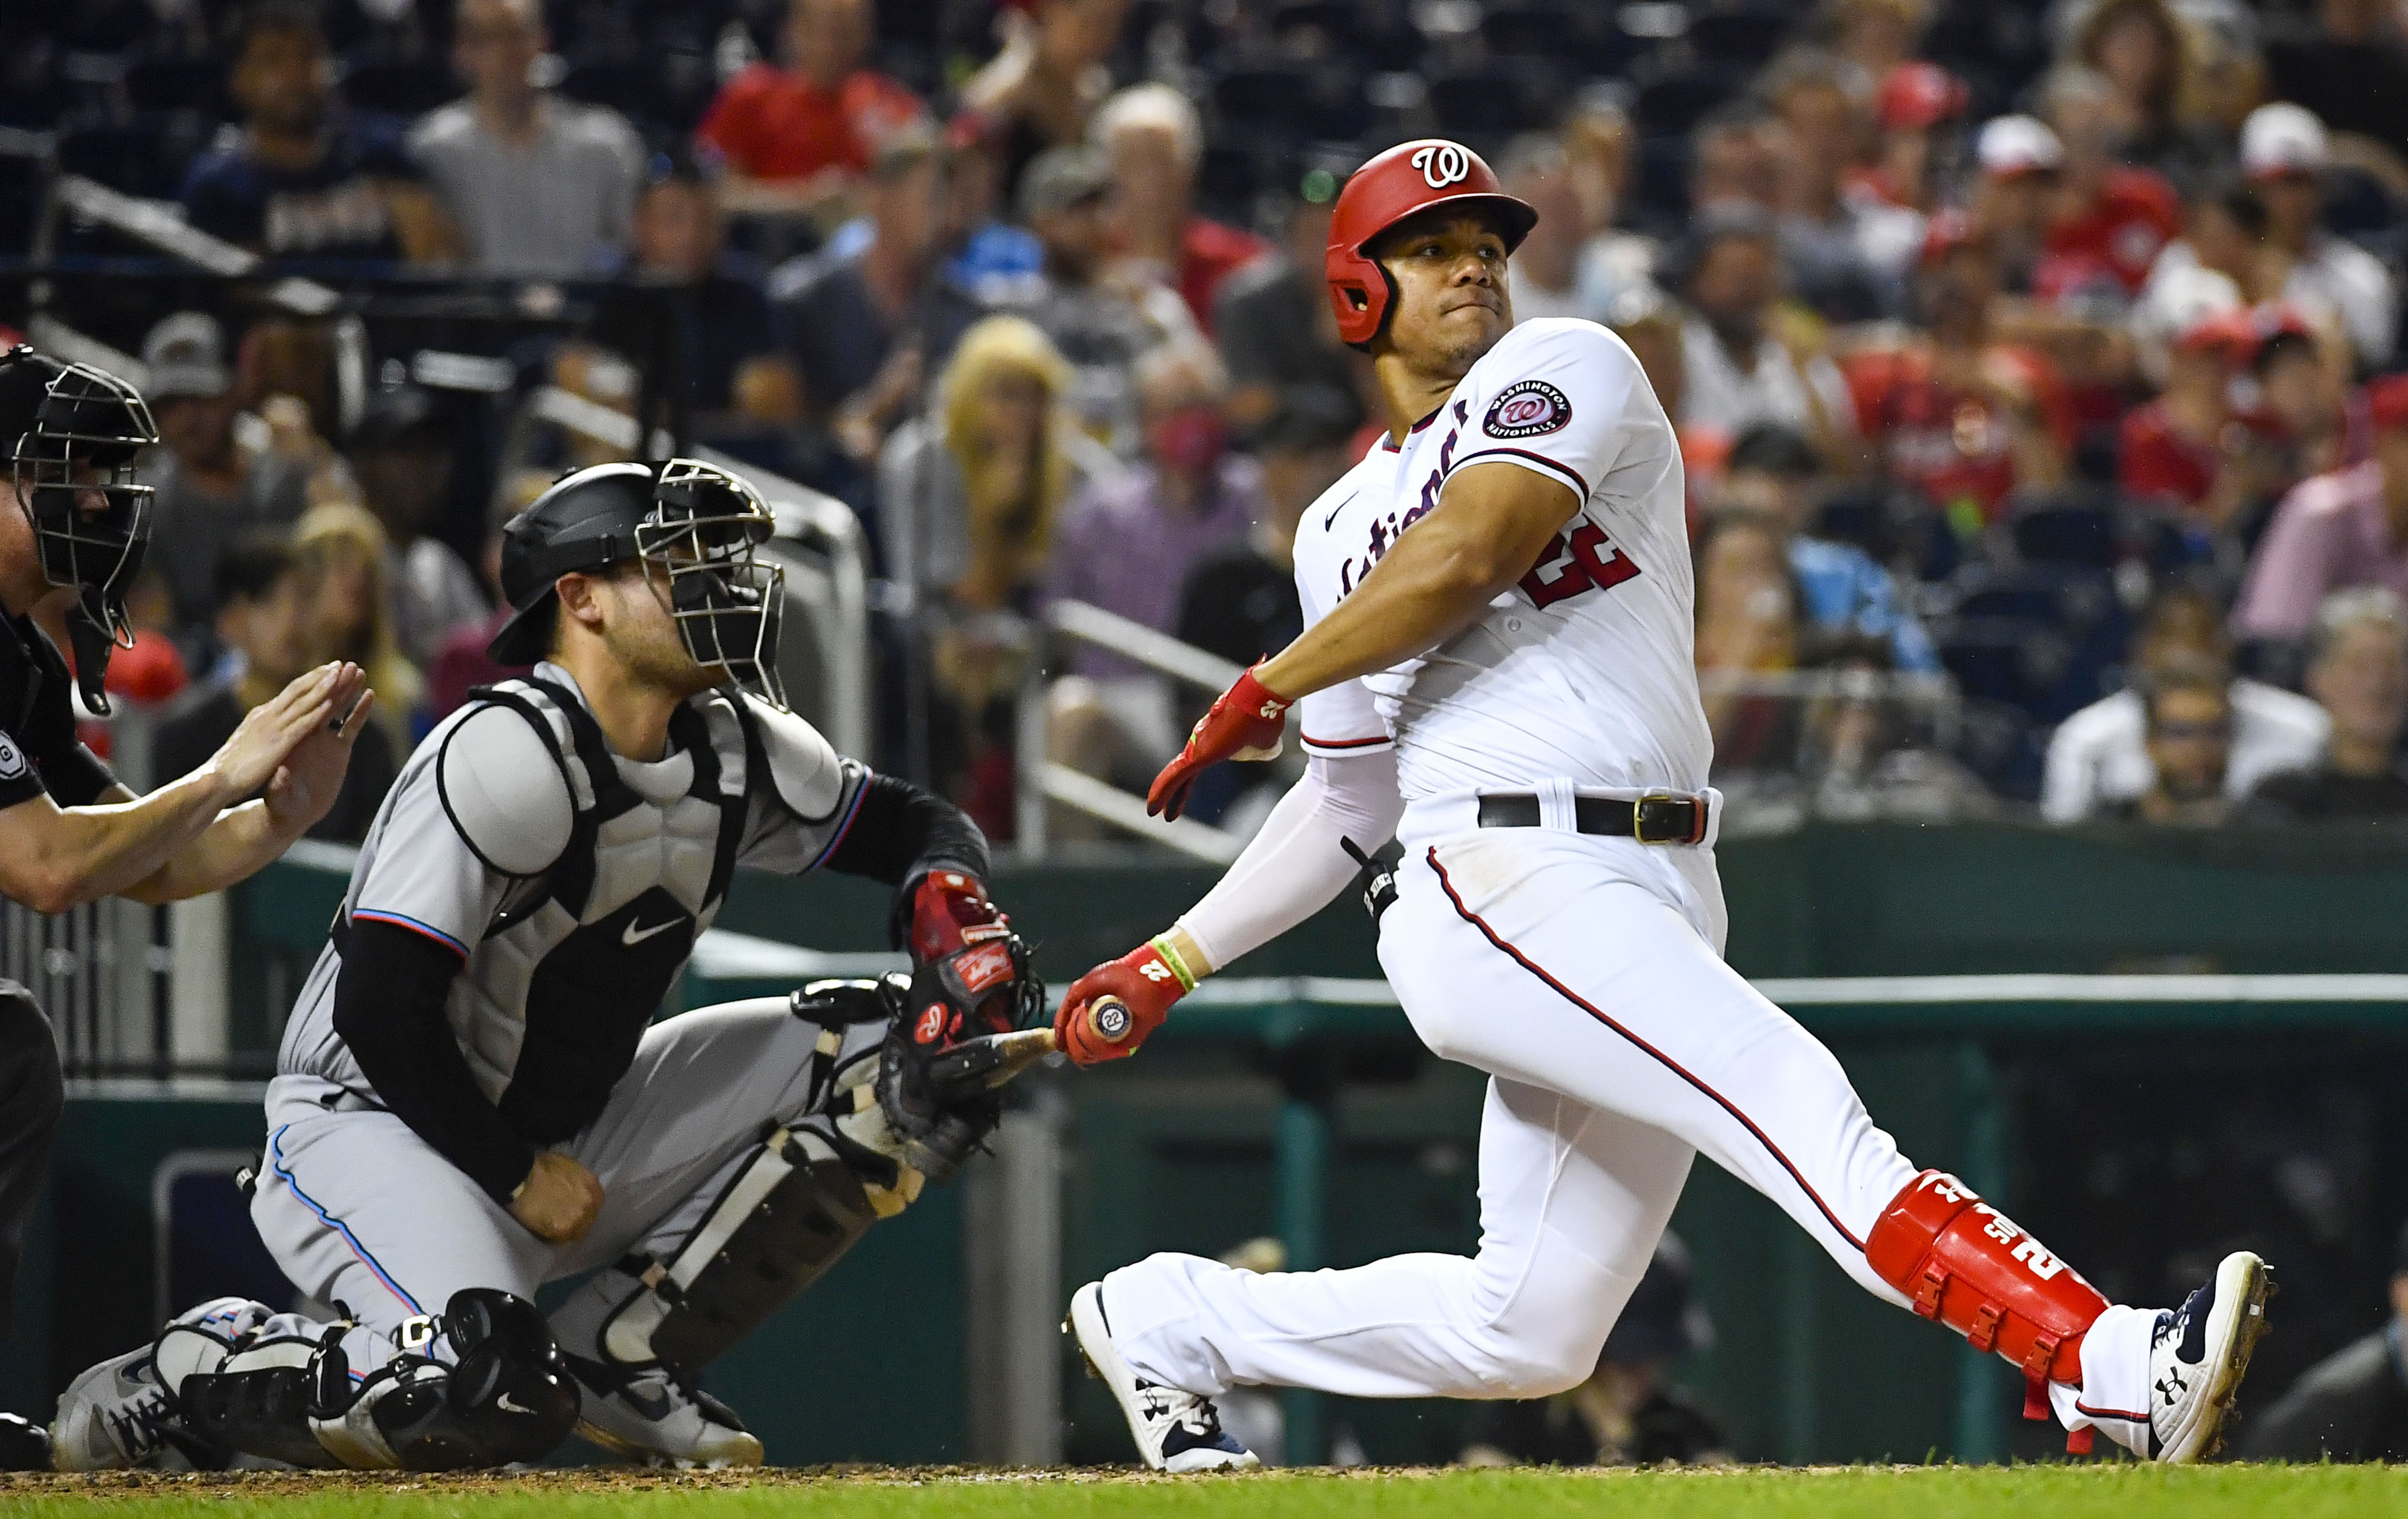 Washington Nationals right fielder Juan Soto (22) hits an RBI single against the Miami Marlins during the third inning at Nationals Park